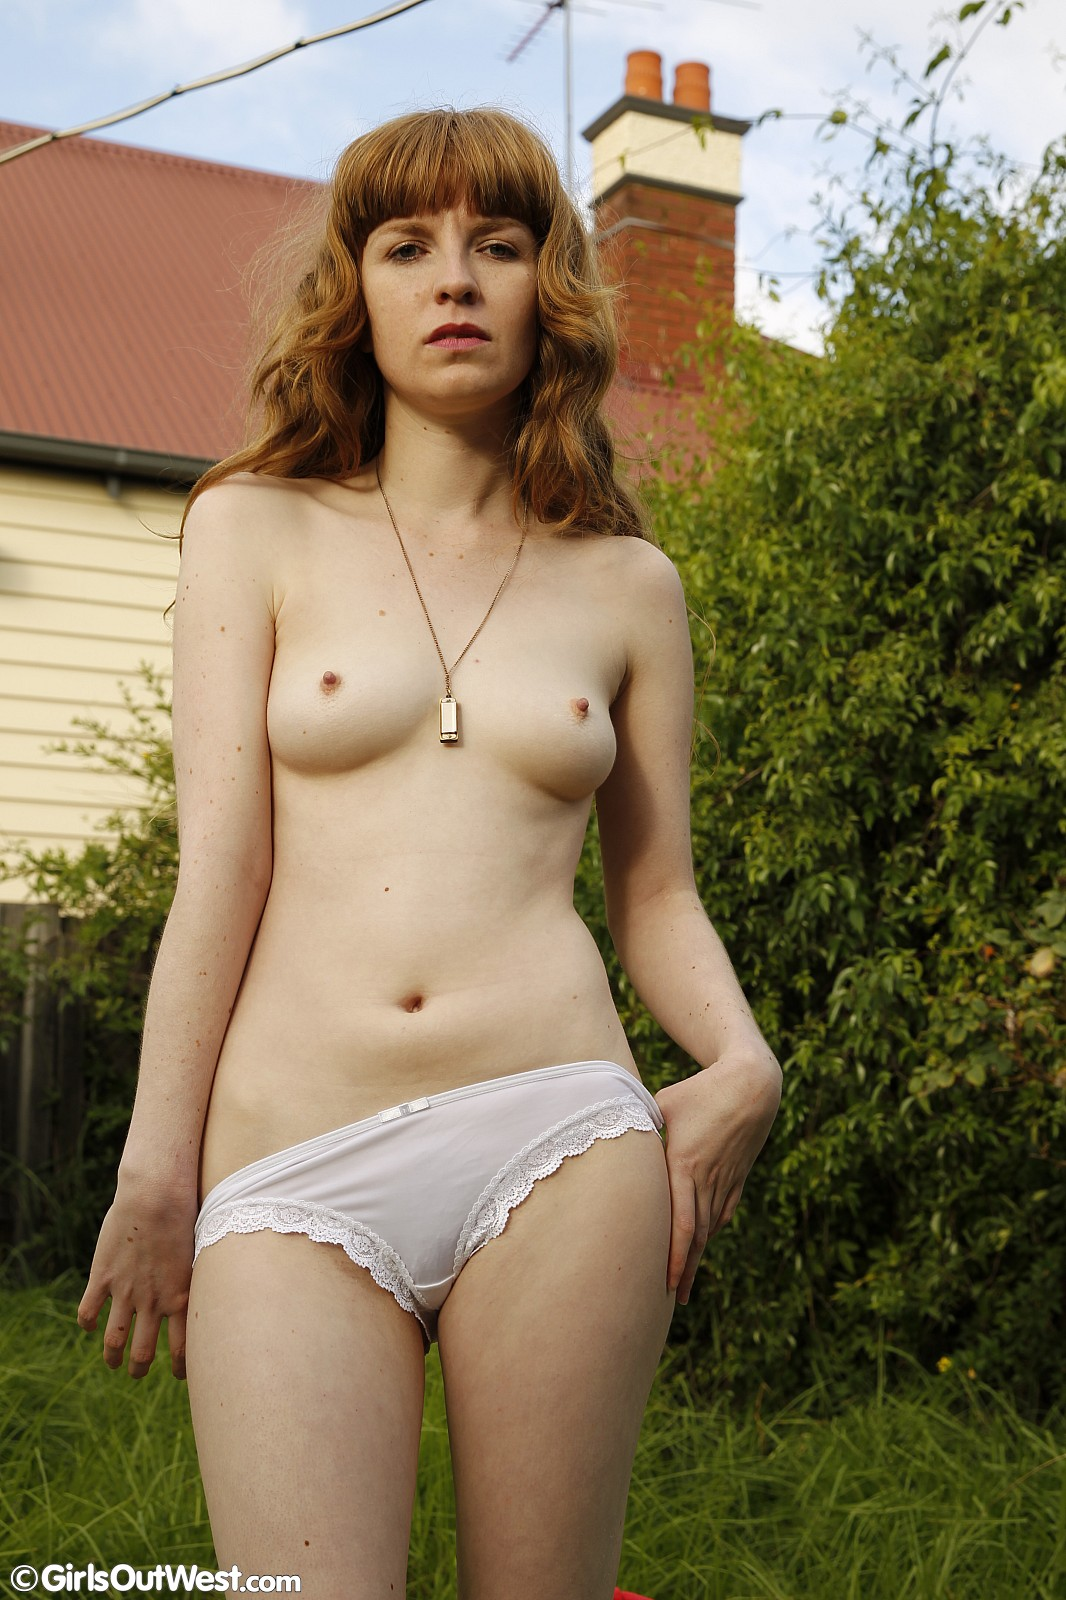 Nude Panties Outdoors